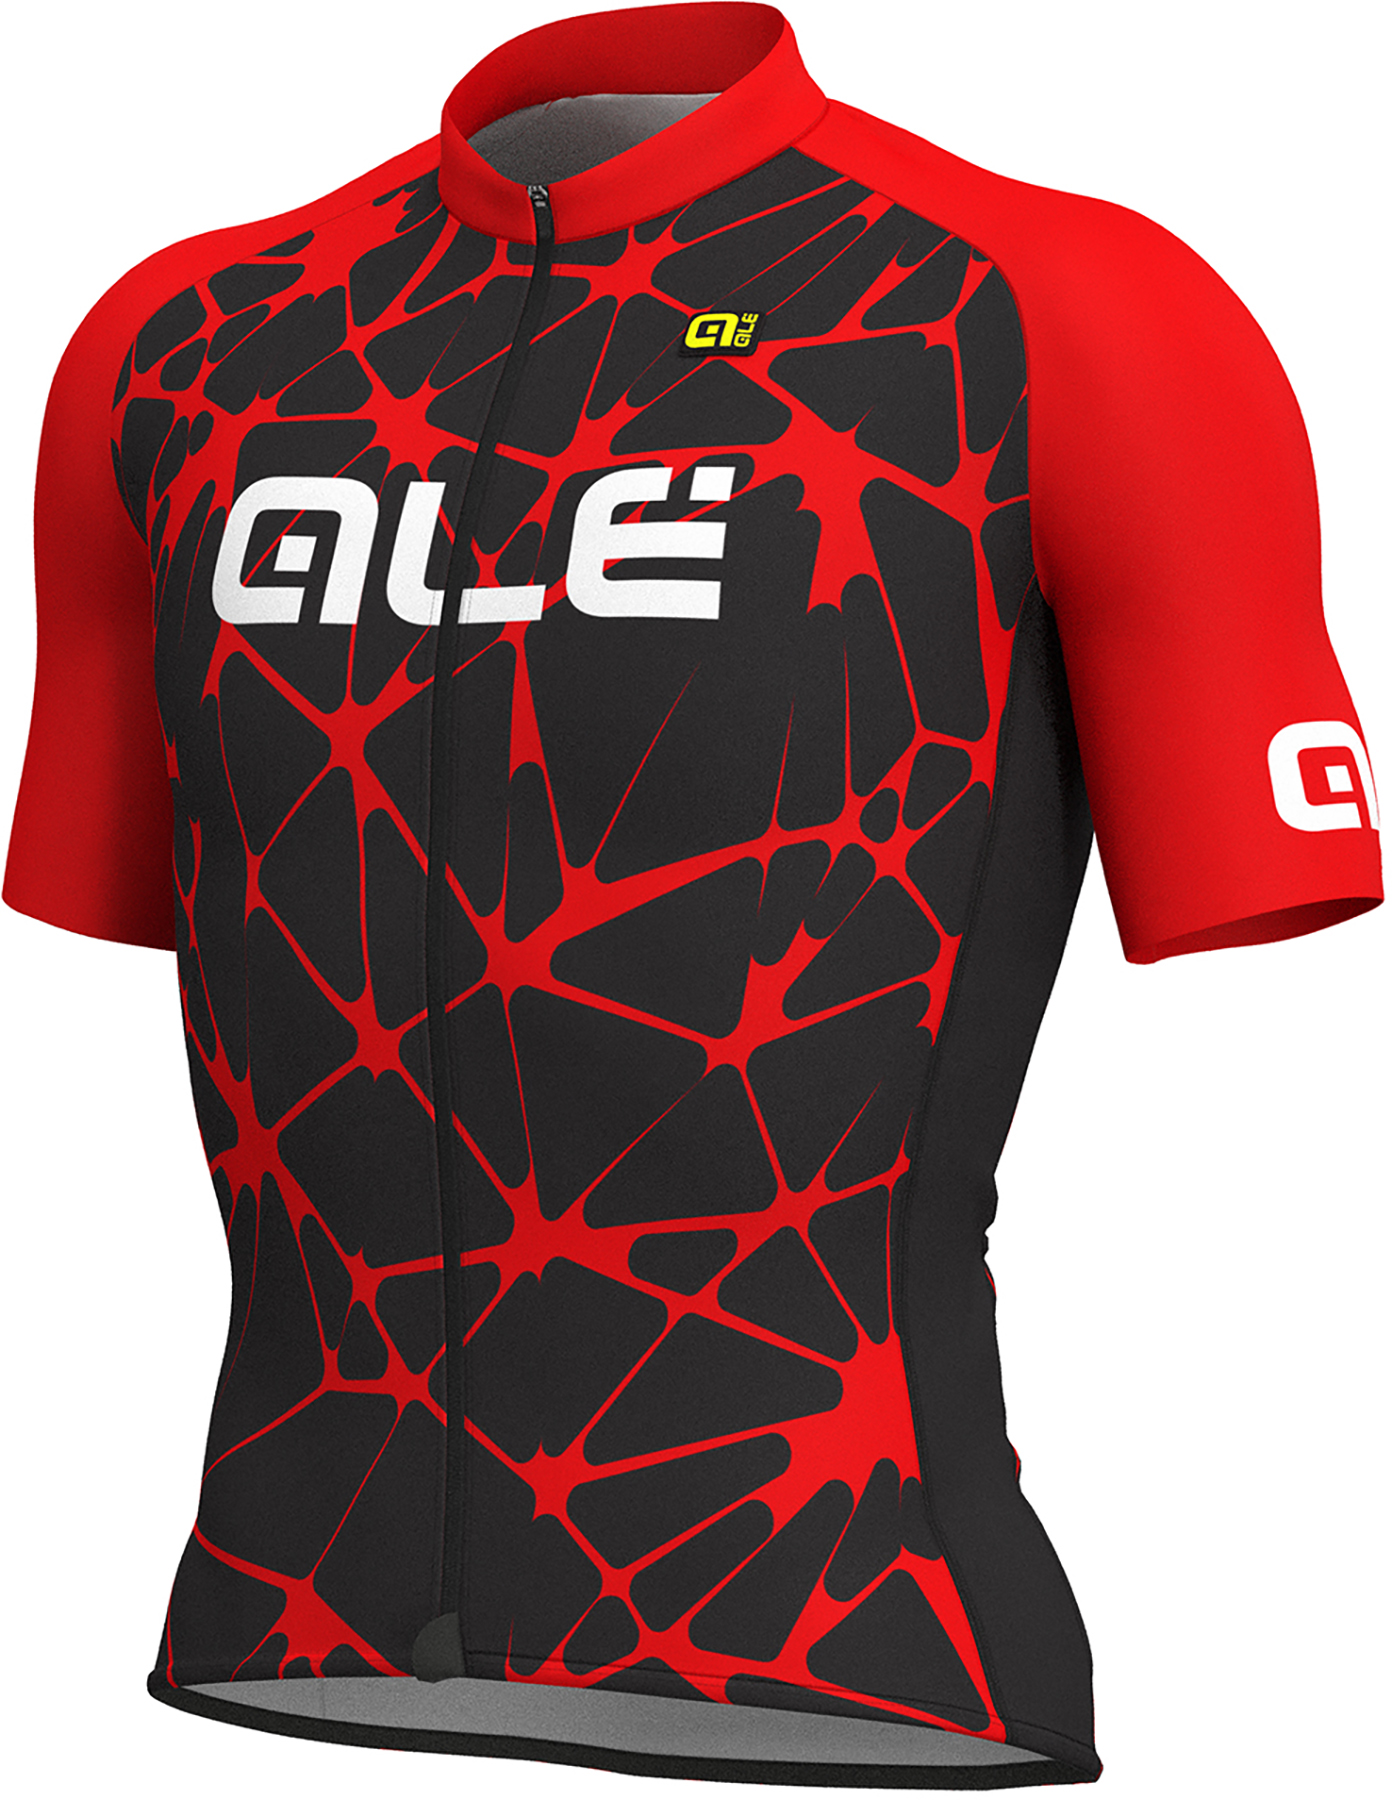 Alé Solid MC Cracle Jersey | Jerseys